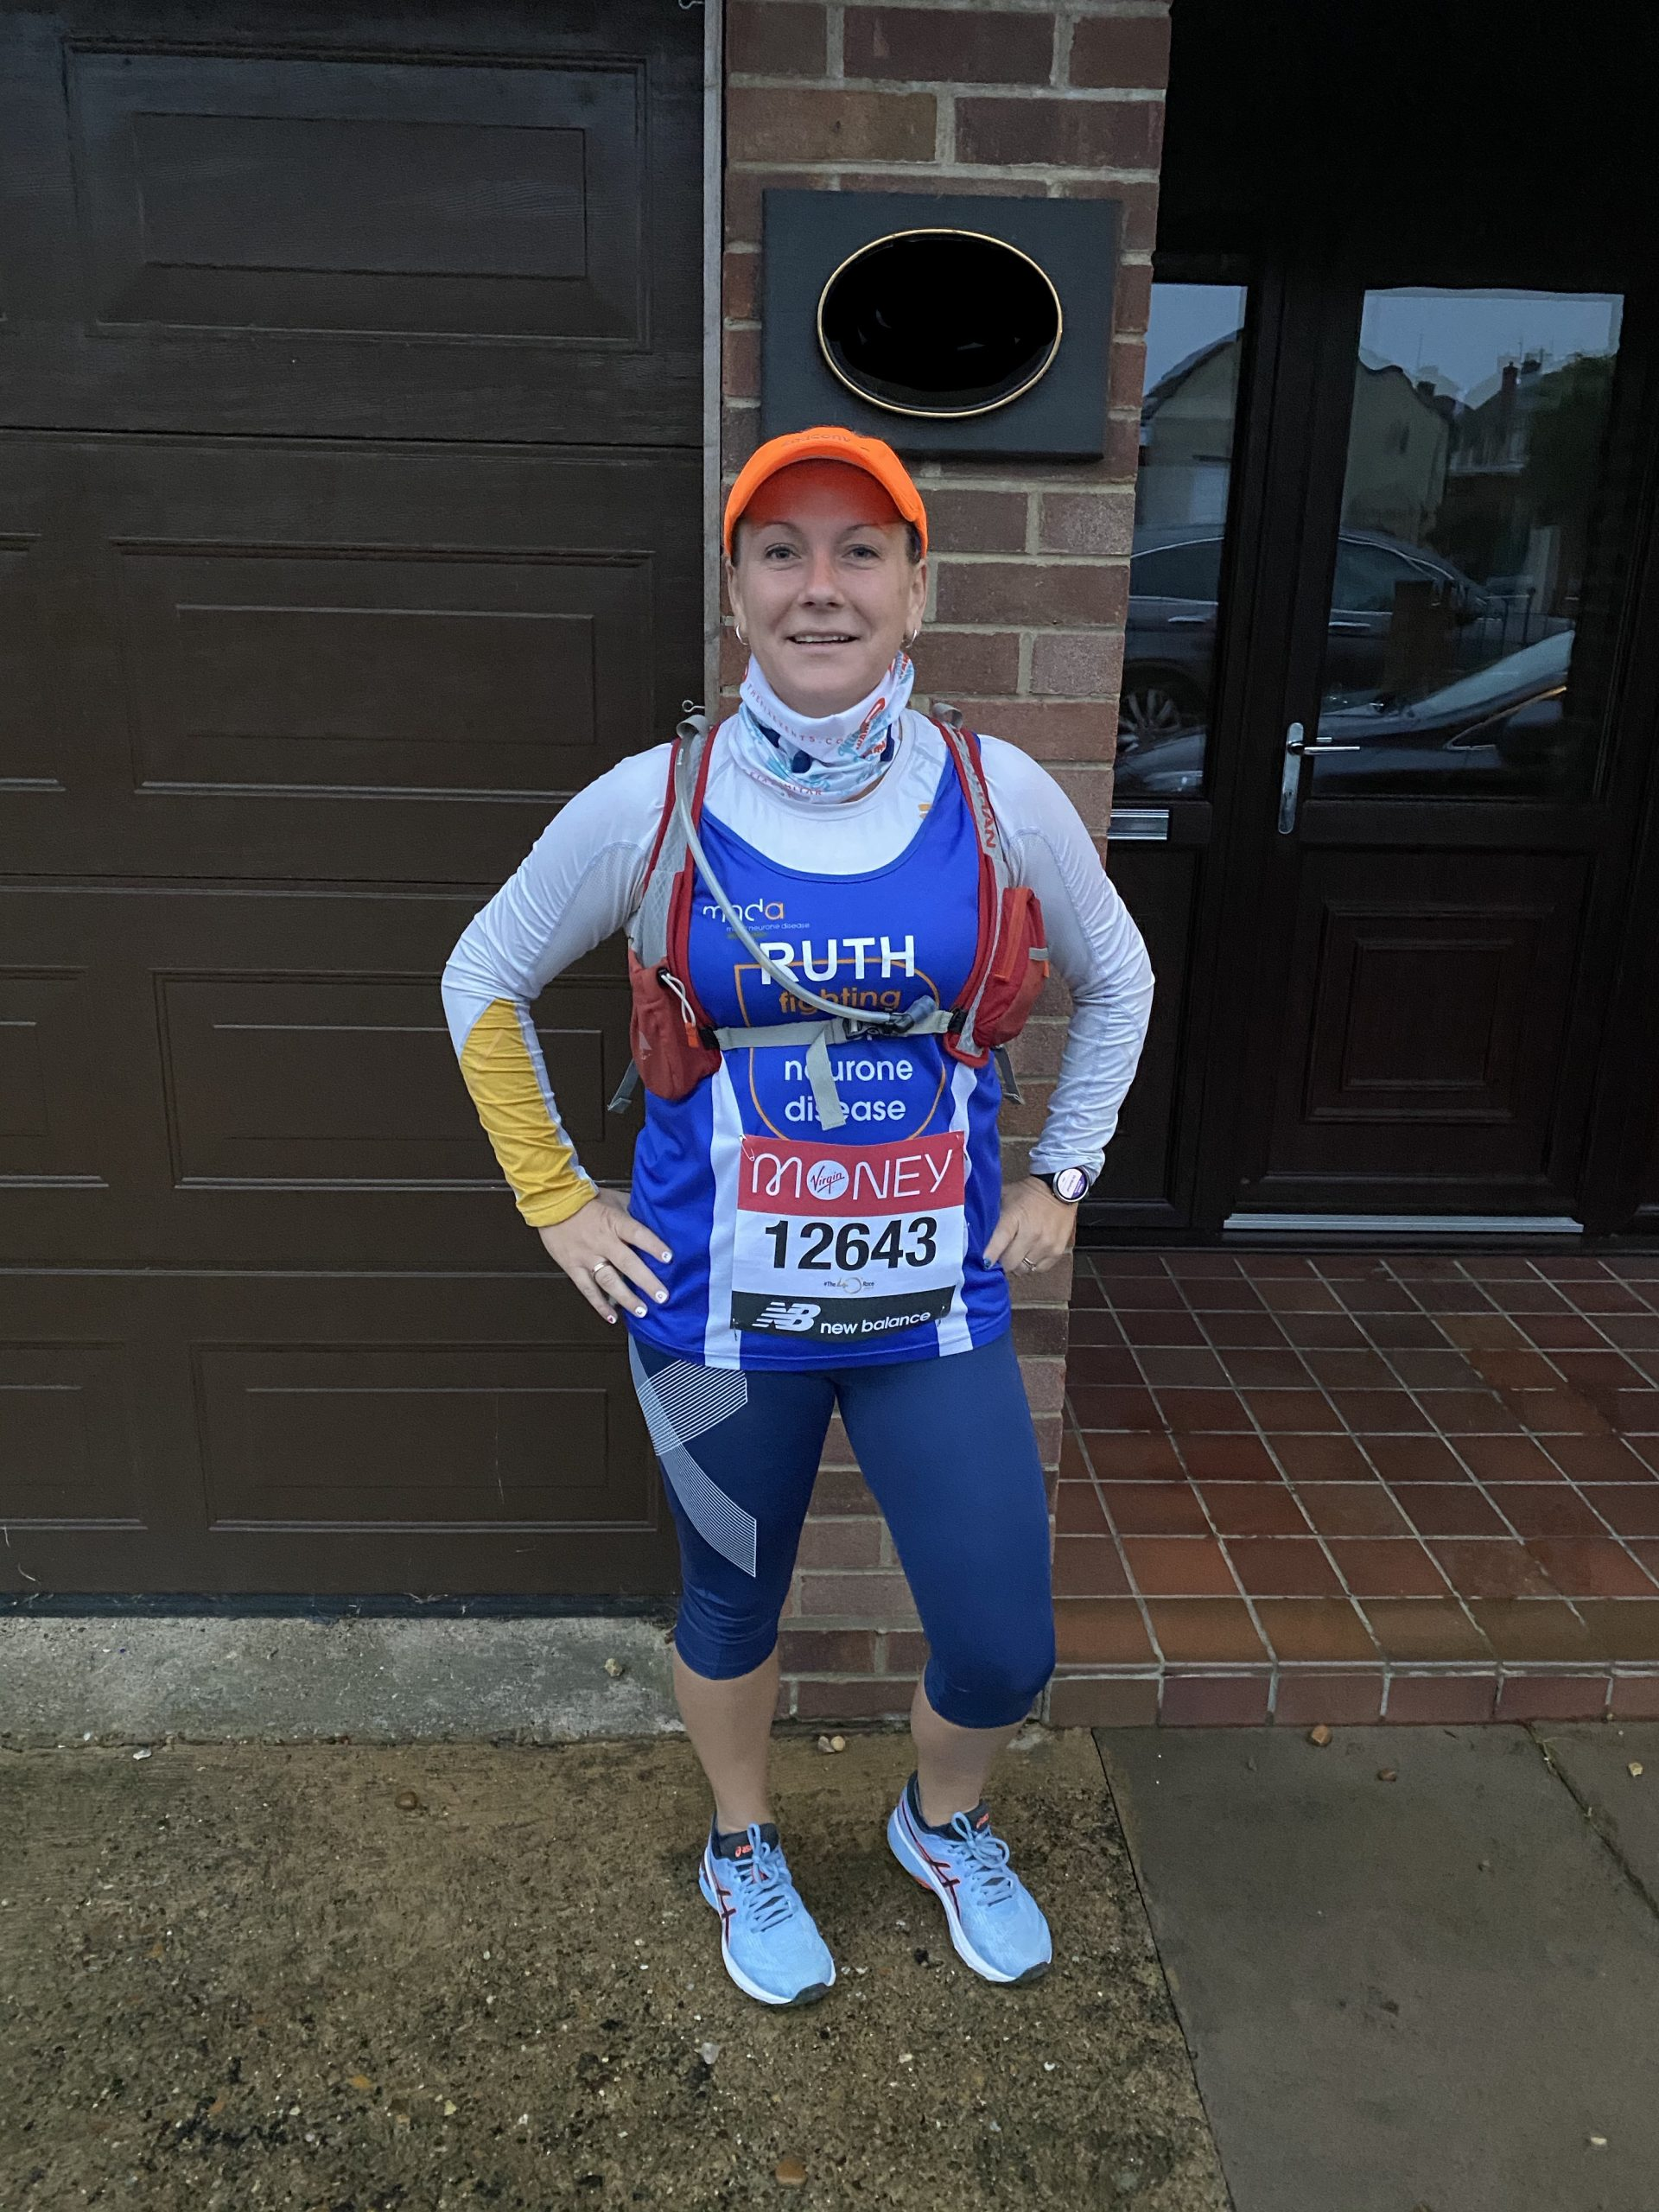 Ruth London Marathon 2020